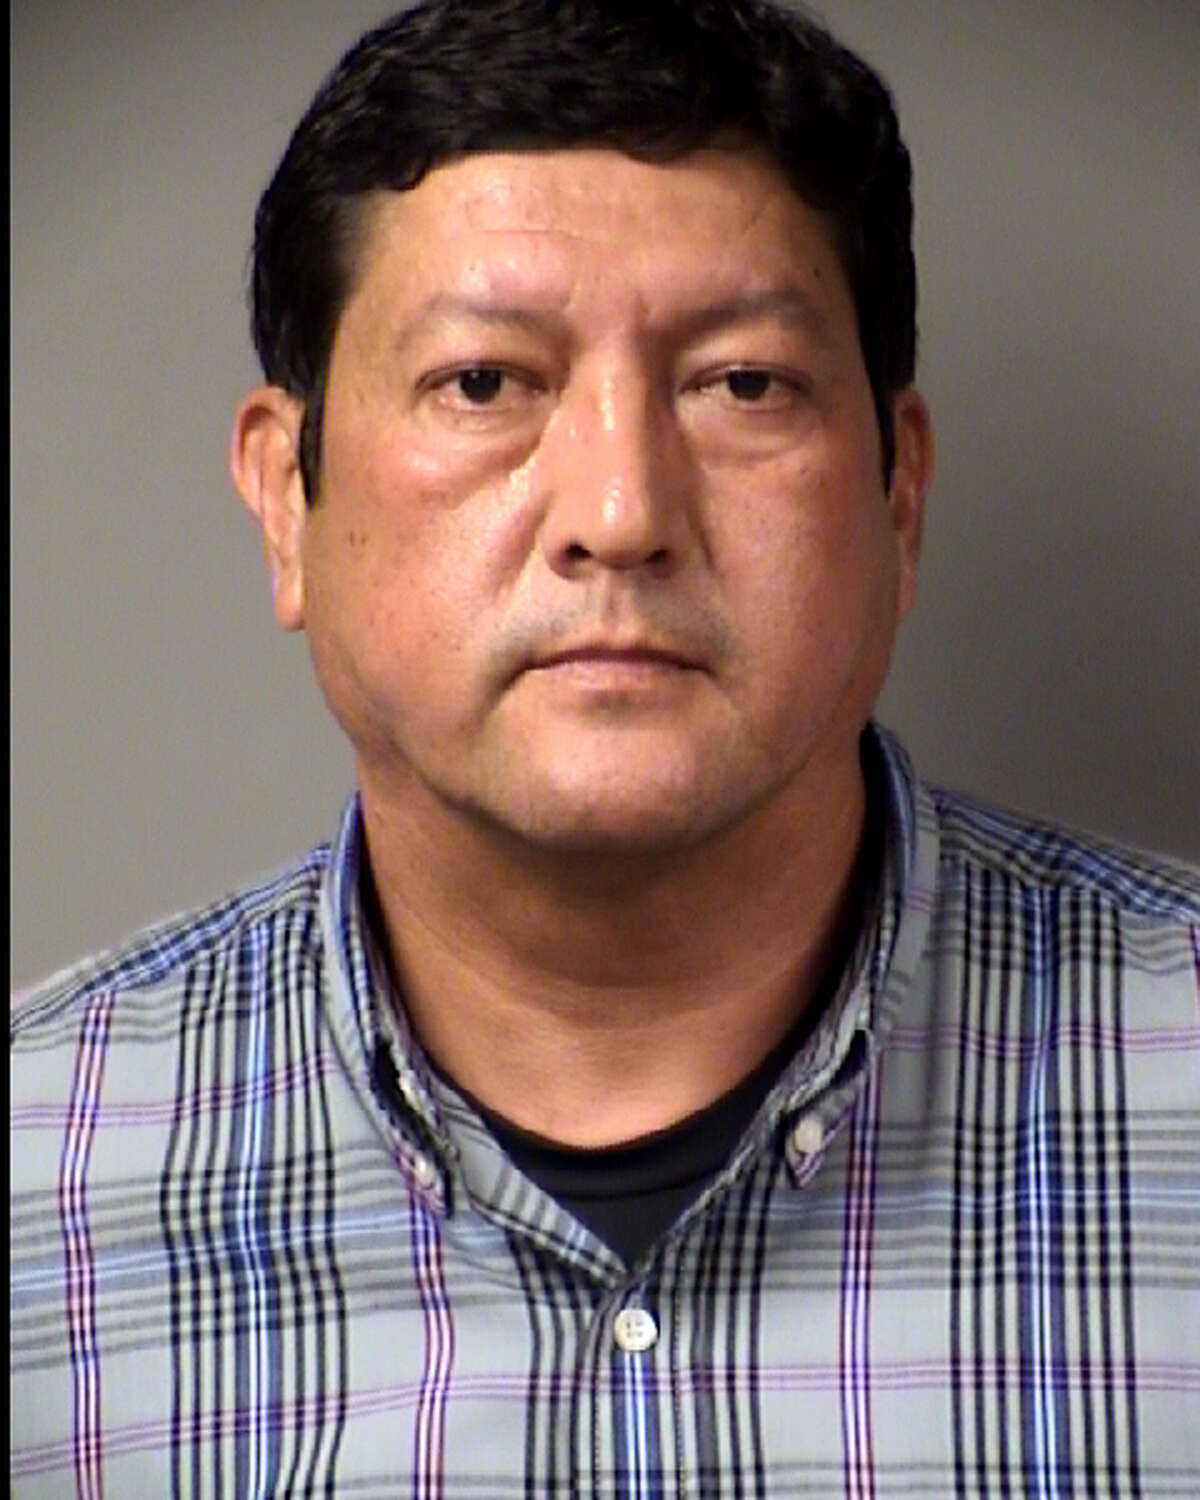 Johnny Diaz resigned from the San Antonio Police Department in January of 2016, according to SAPD.